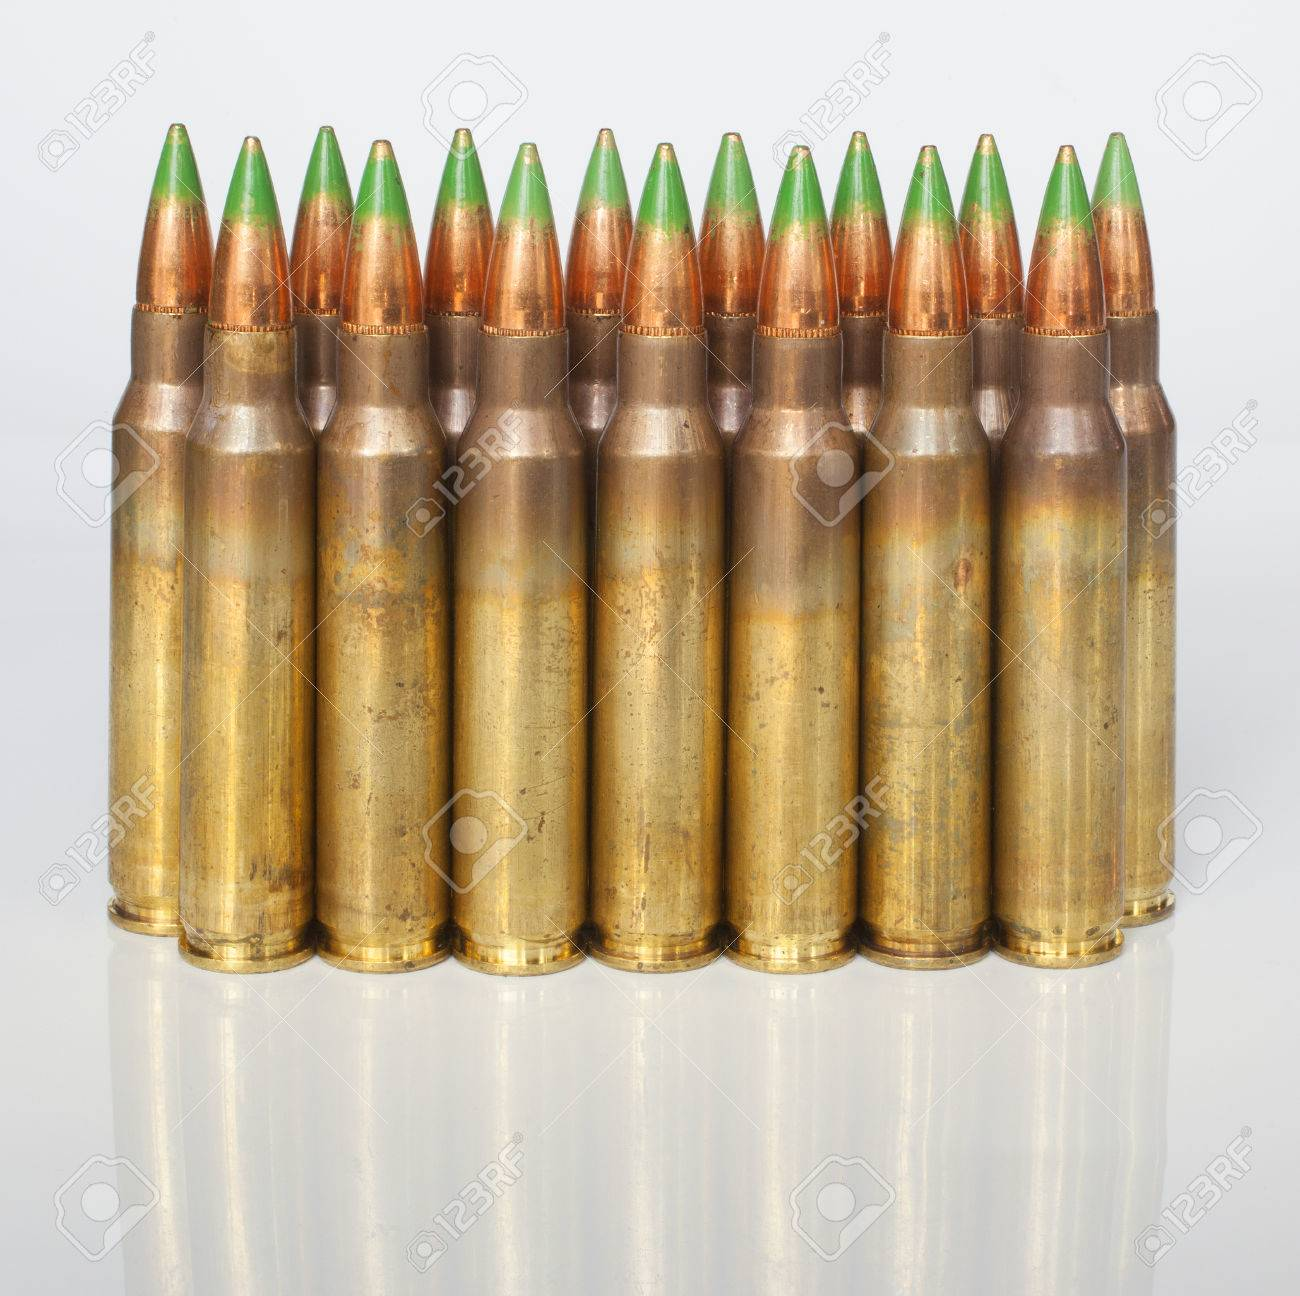 cartridges loaded with bullets that have a green tip on a white